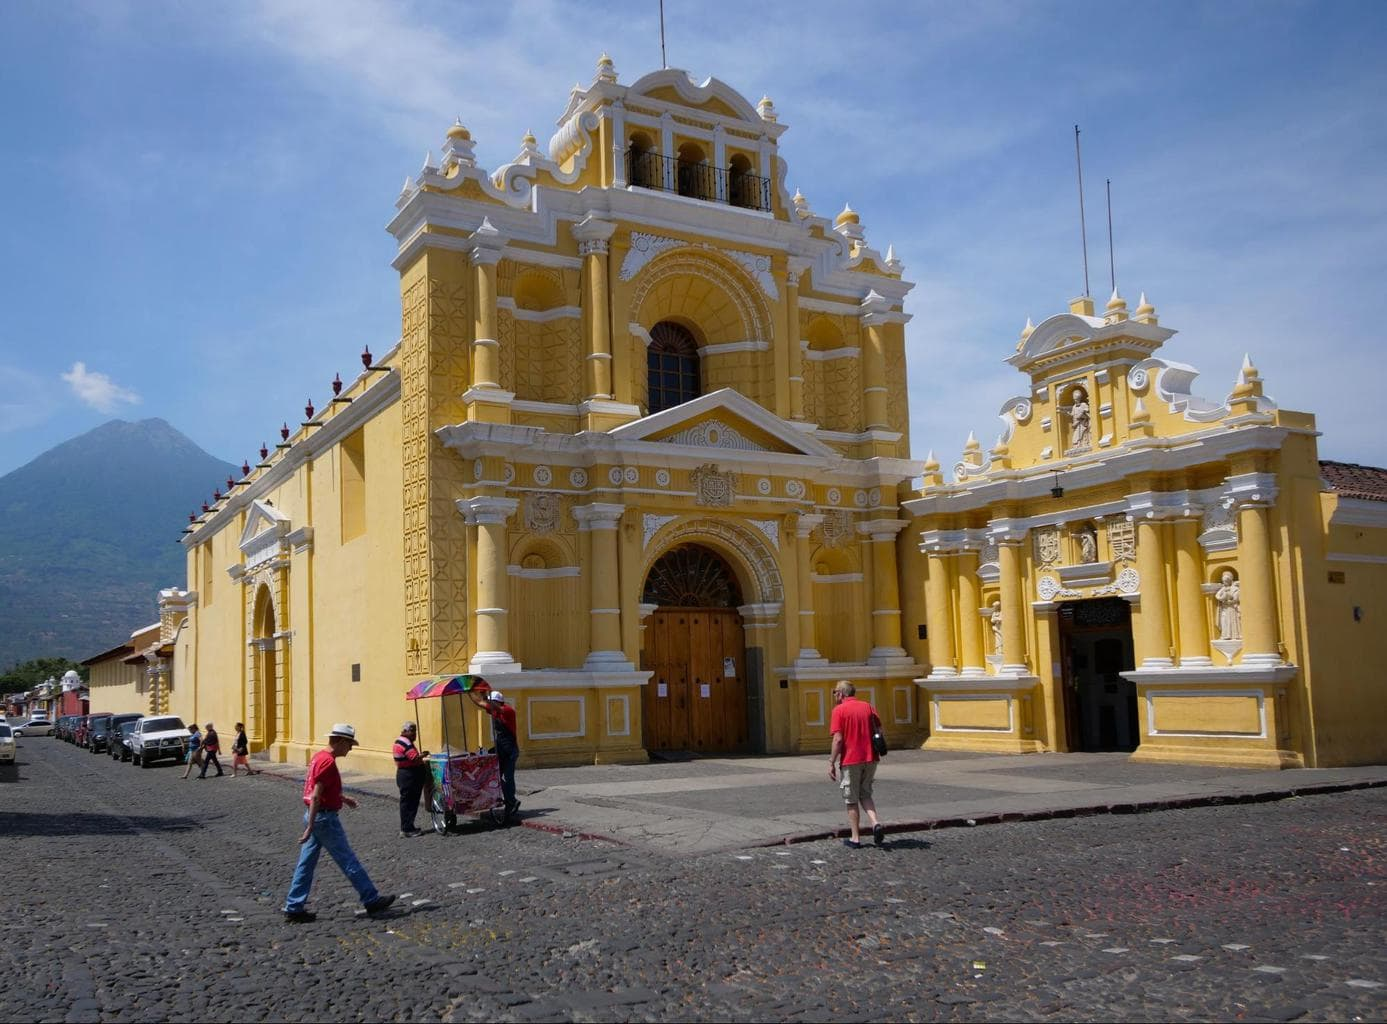 Guatemala is a multicultural country